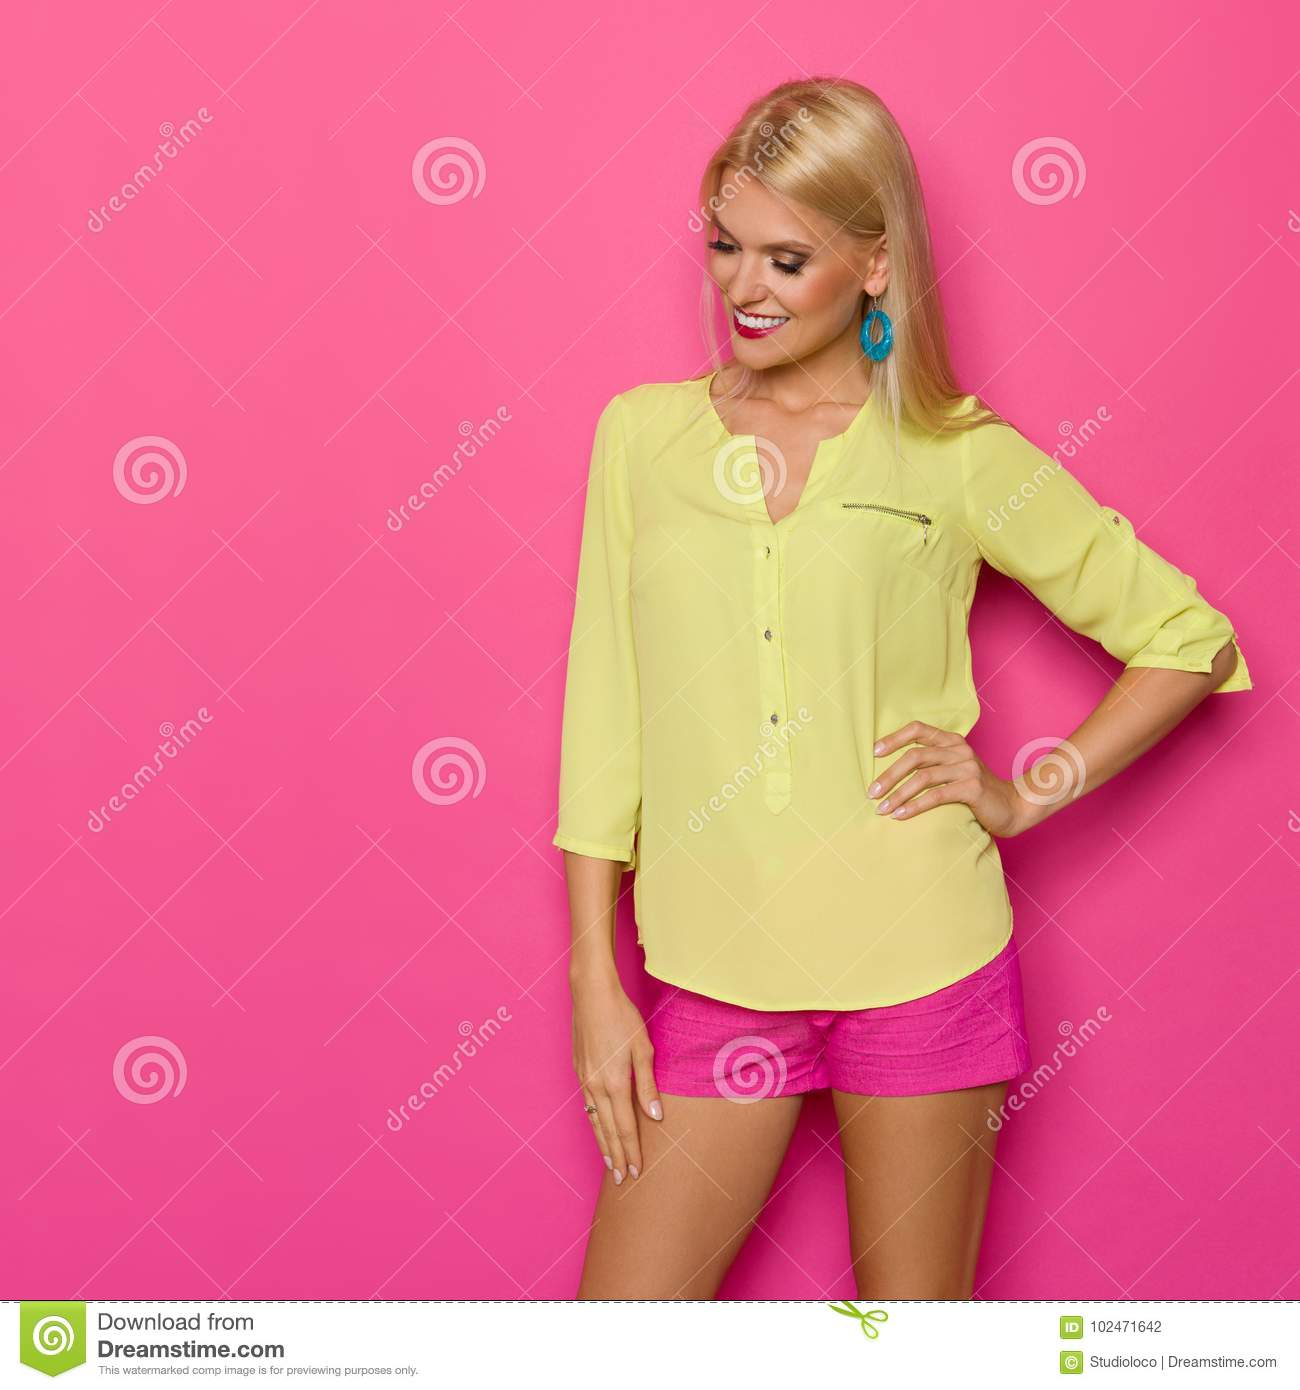 b7685bafa542f Beautiful blond young woman in yellow shirt and pink shorts is standing  with hand on hip